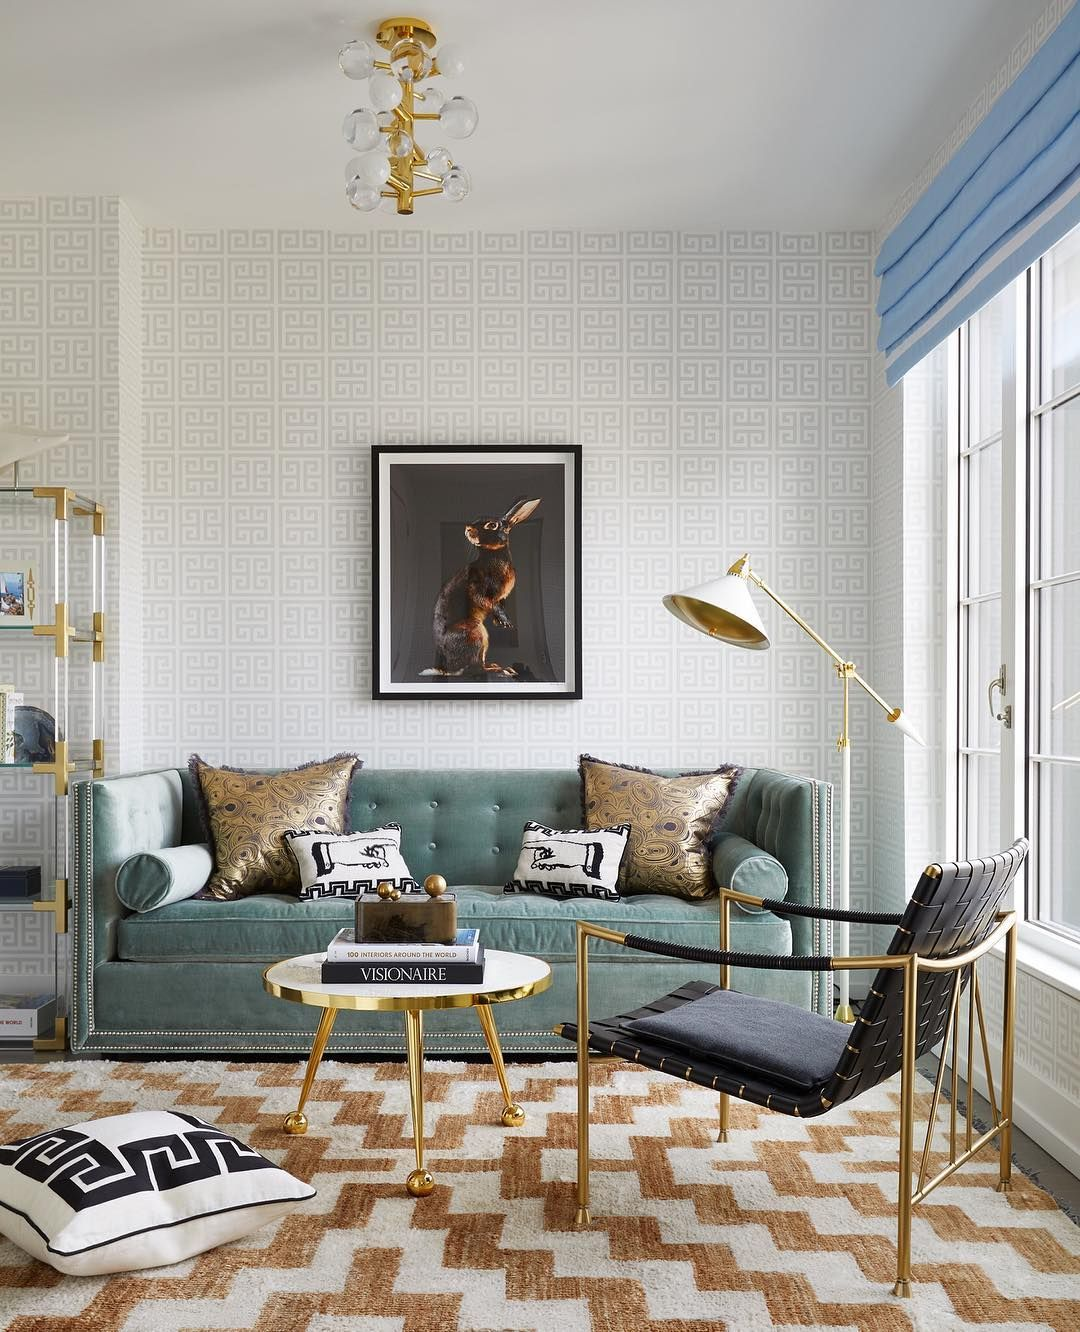 jonathanadler | House | Pinterest | Living rooms, Bar and Interiors